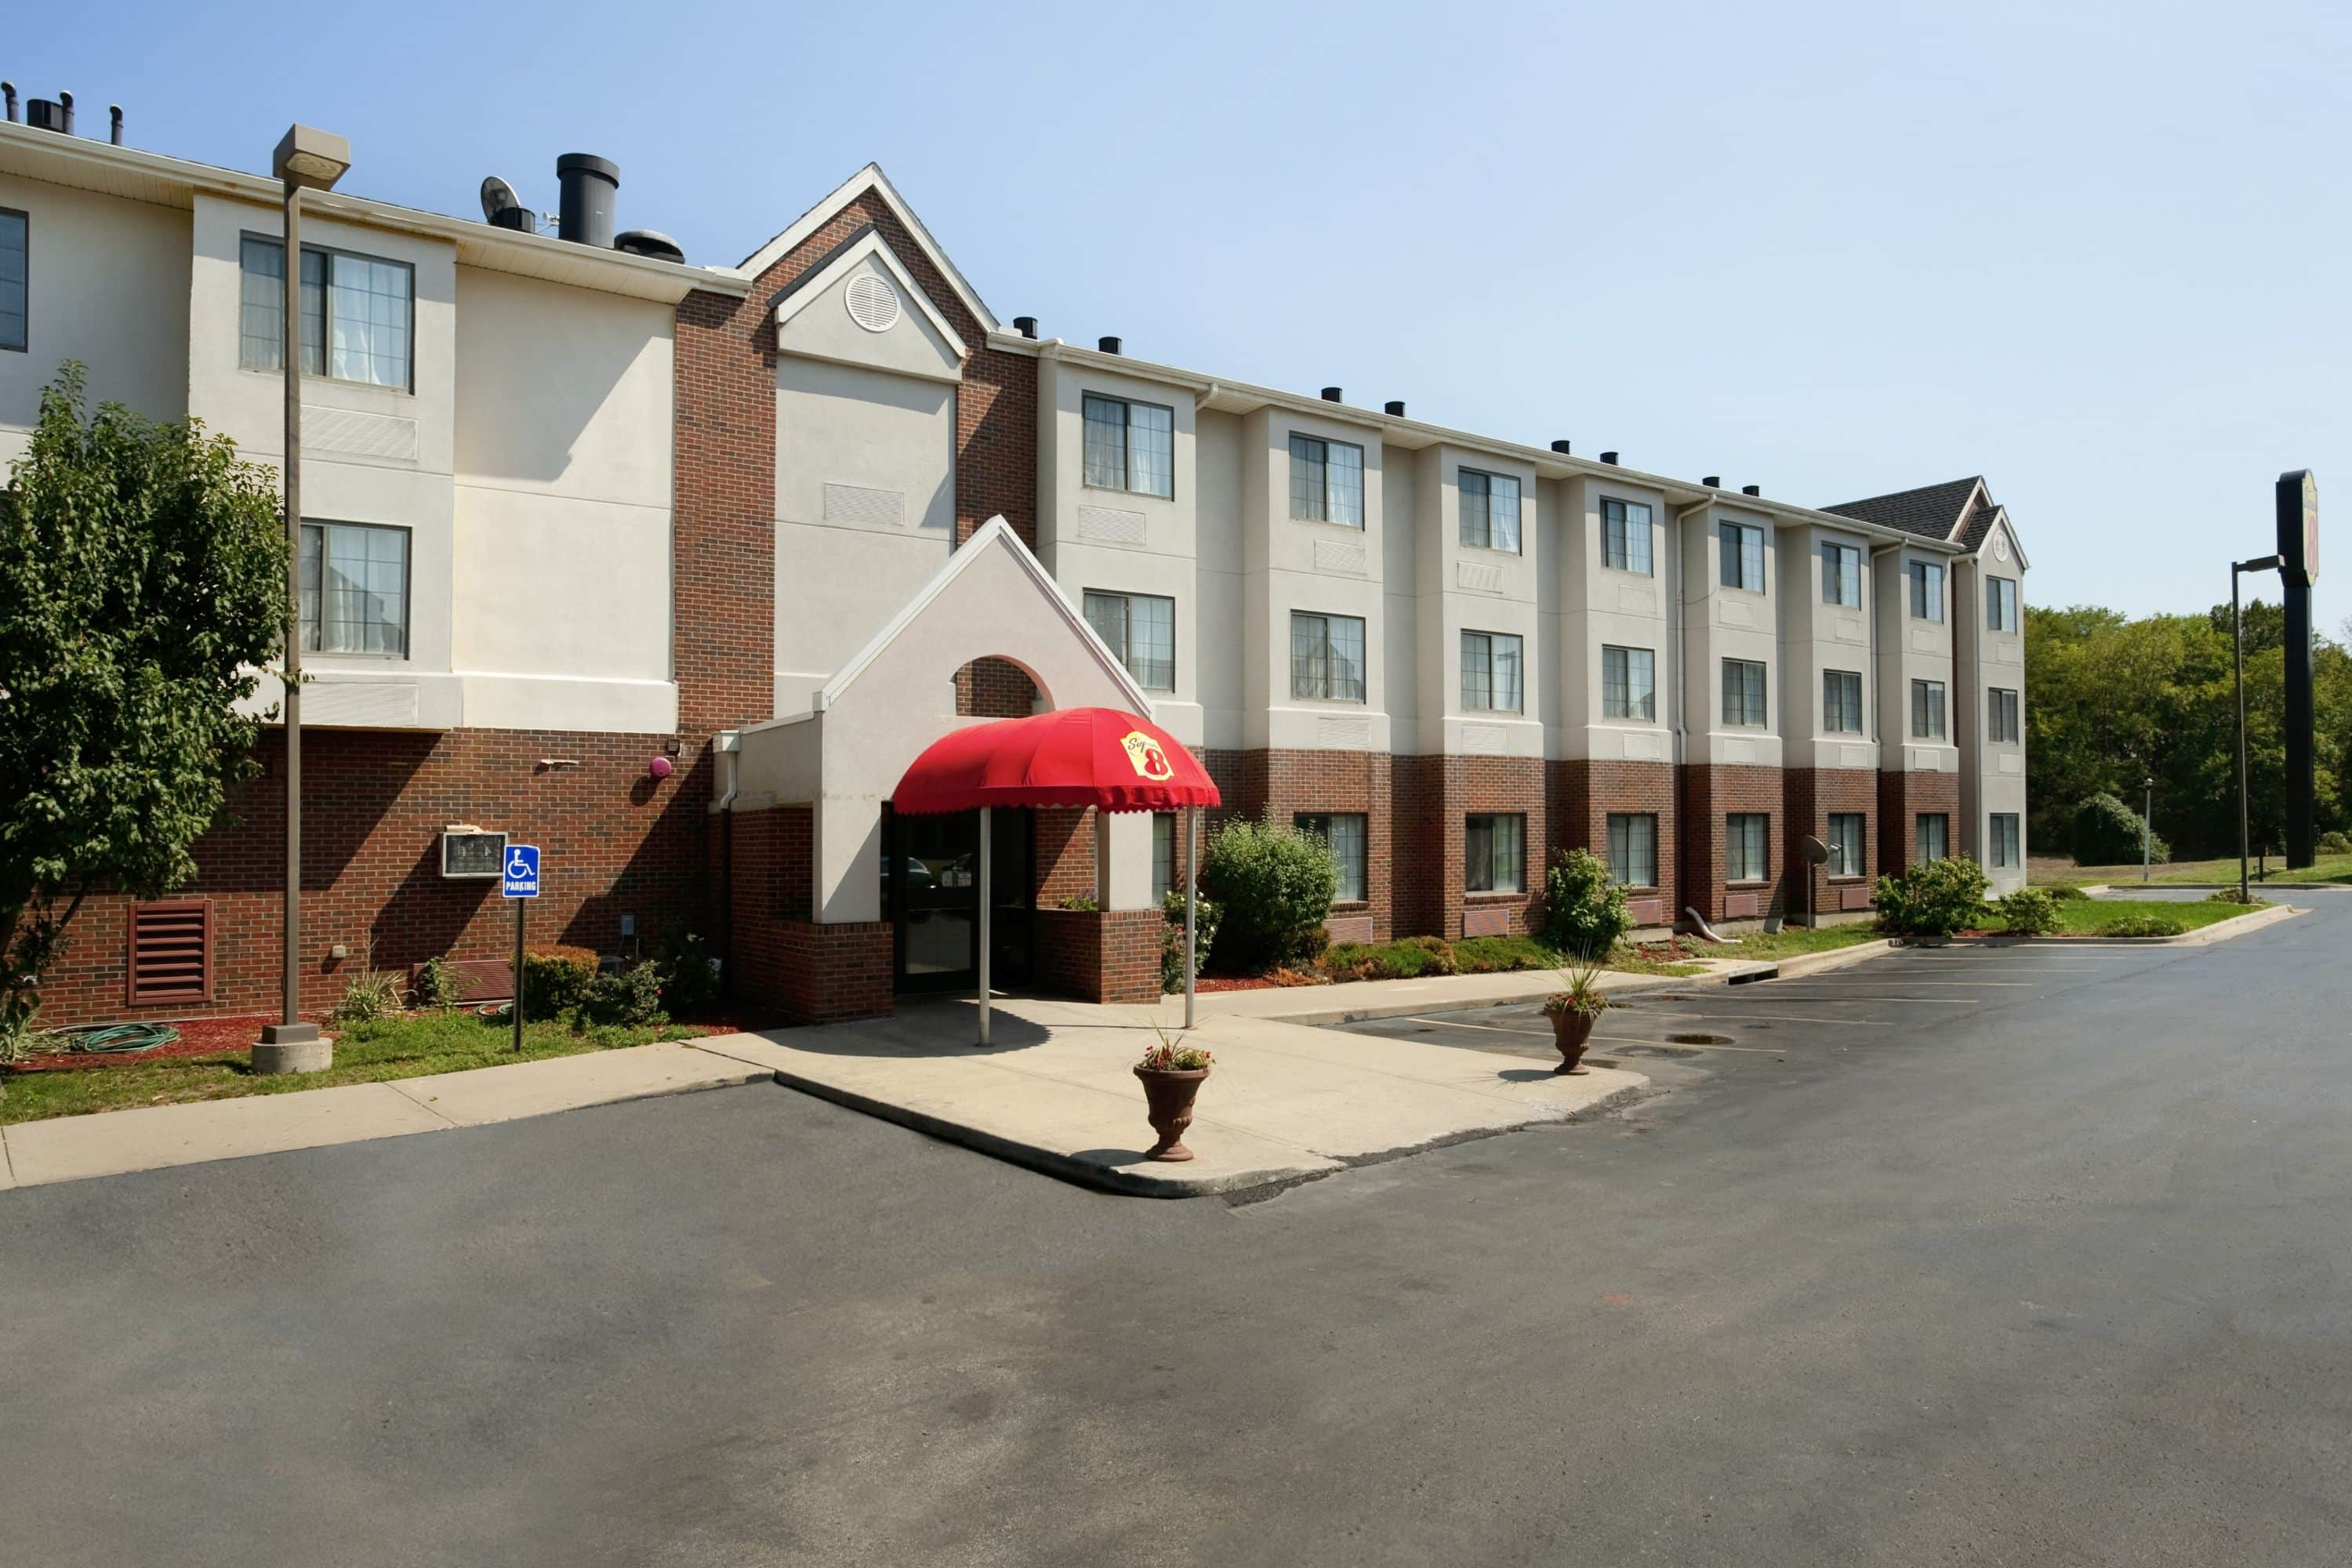 Excellent Exterior Of Super Overland Park Kc Area Near Convention Center Hotel In With Hotels Shawnee Ks